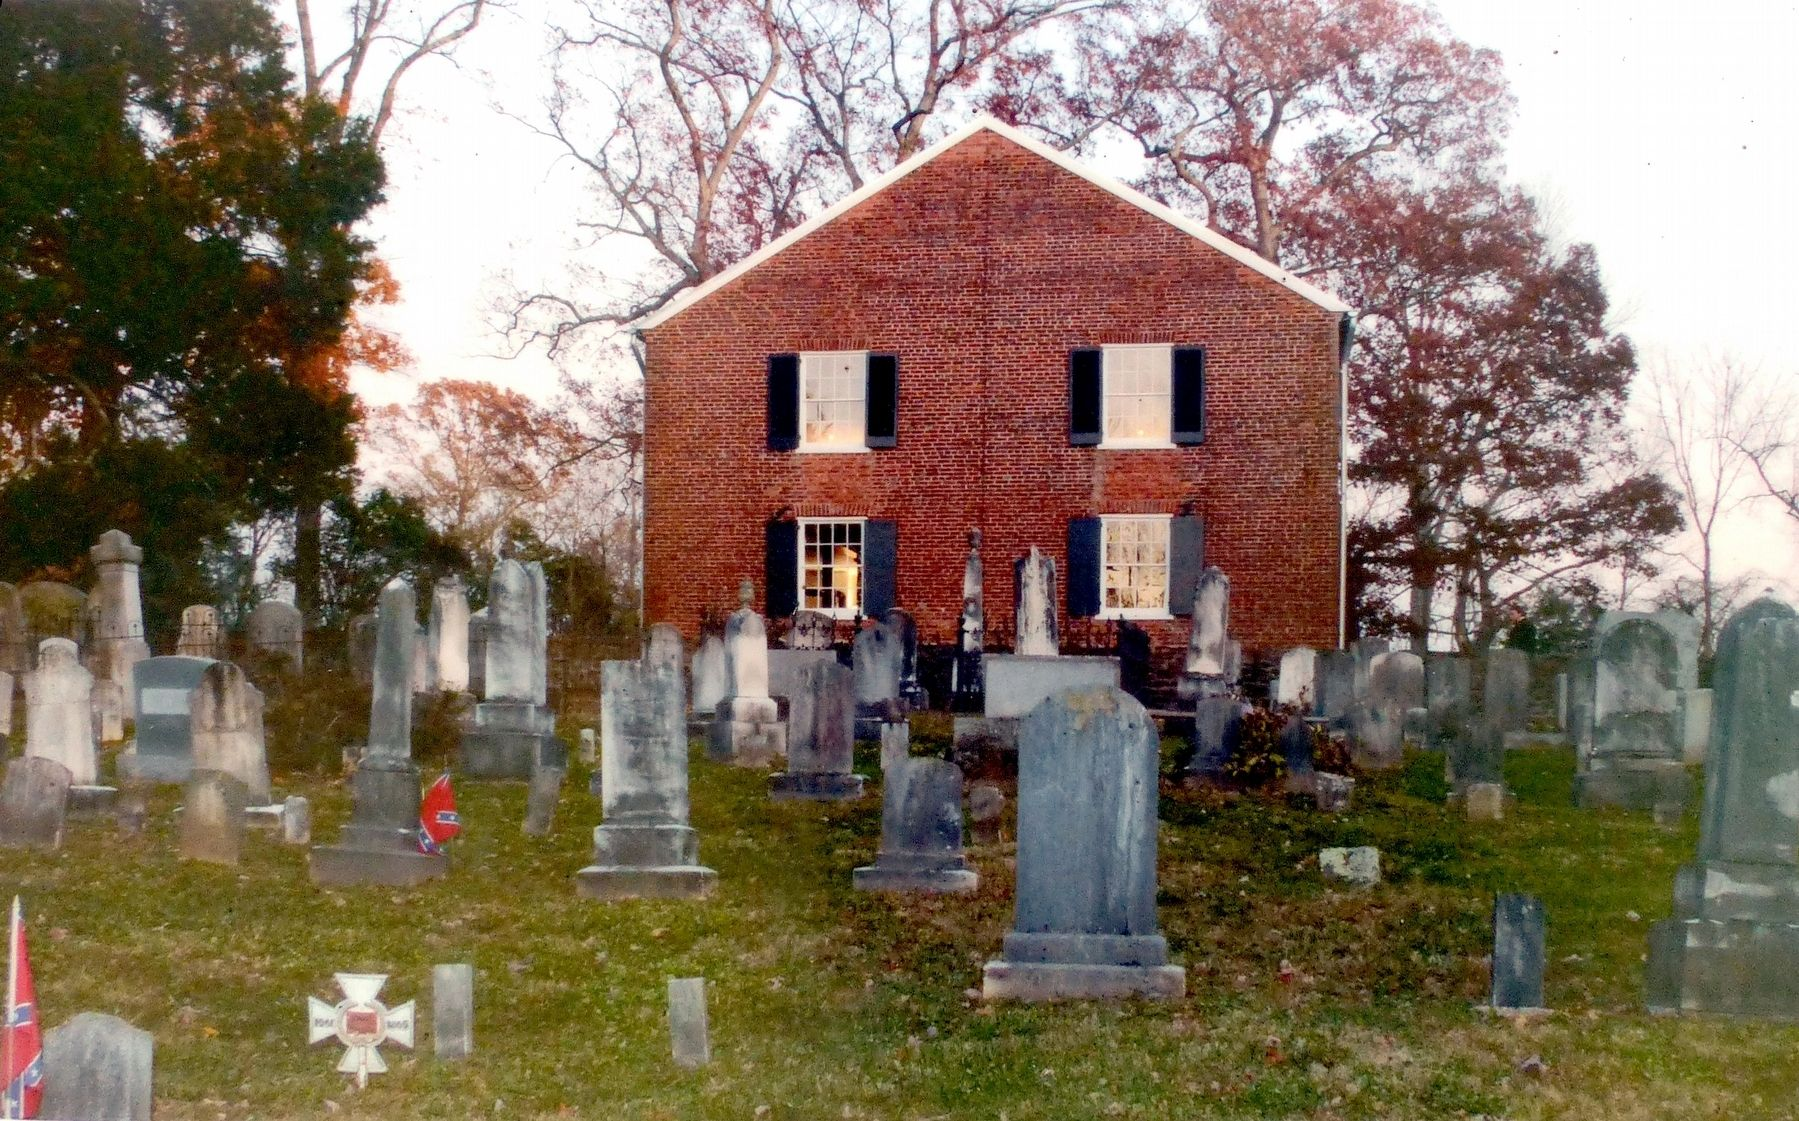 Mt. Zion Old School Baptist Church & Cemetery image. Click for full size.